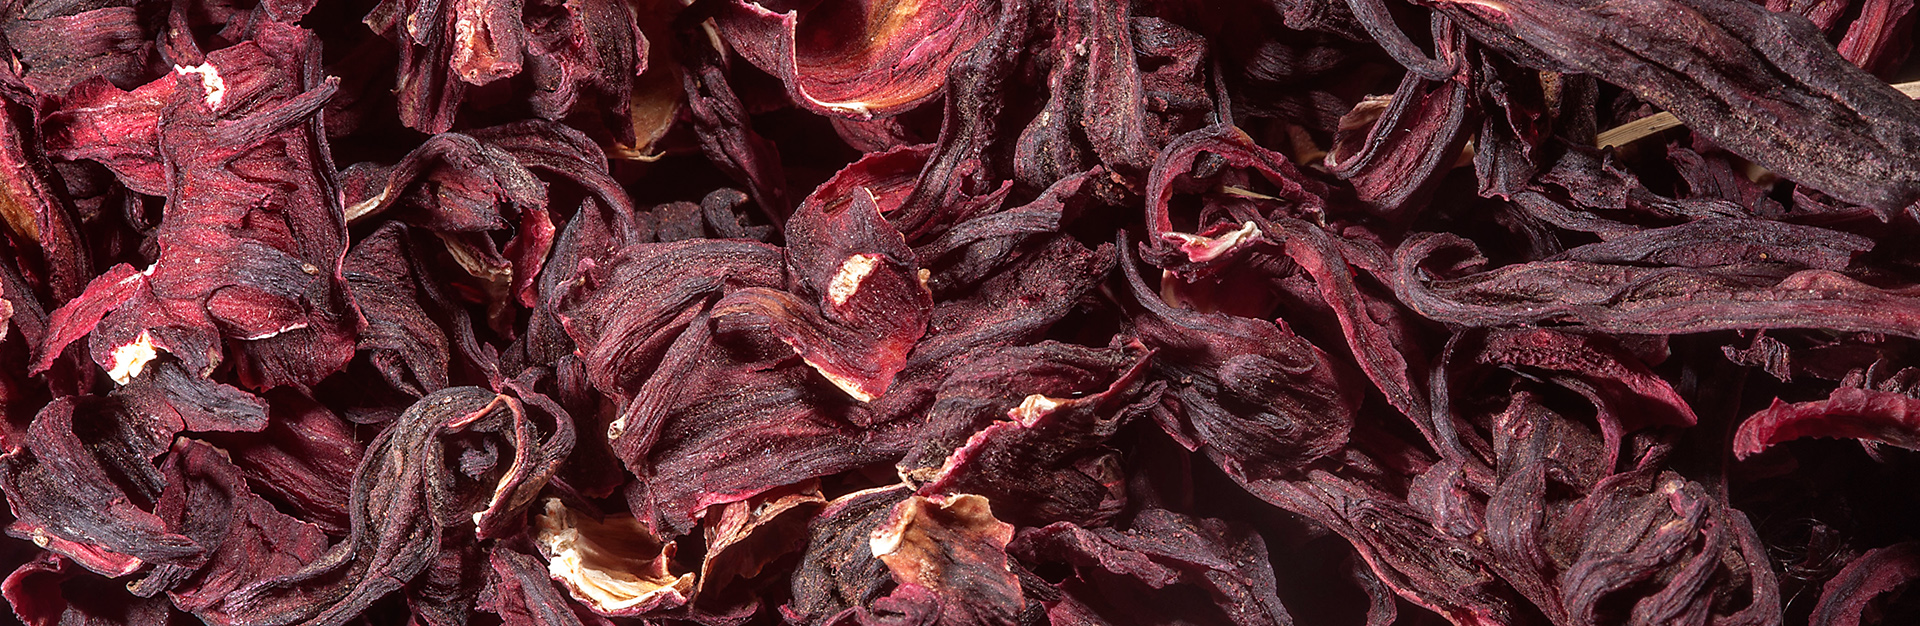 Dried hibiscus flowers robust international robust international dried hibiscus flowers izmirmasajfo Images